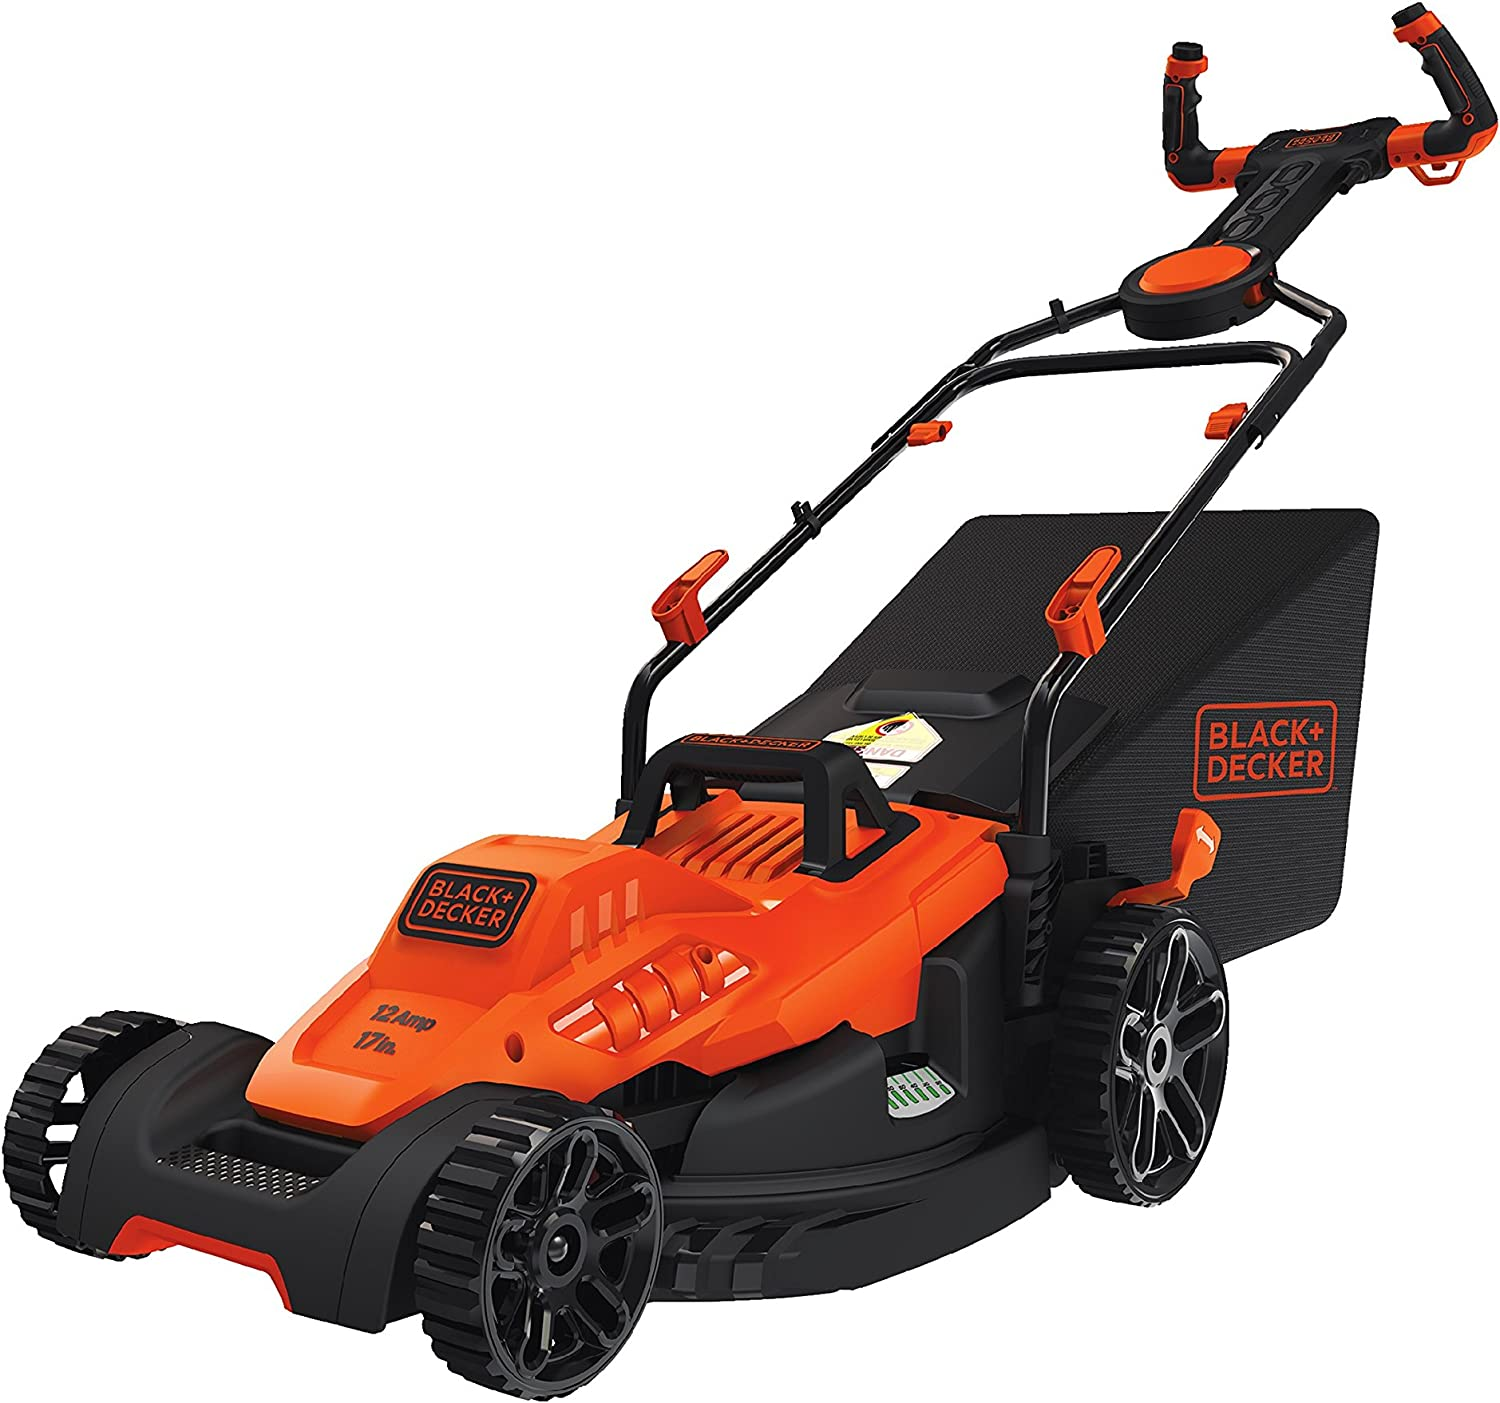 Black Decker BEMW482ES Electric Lawn Mower